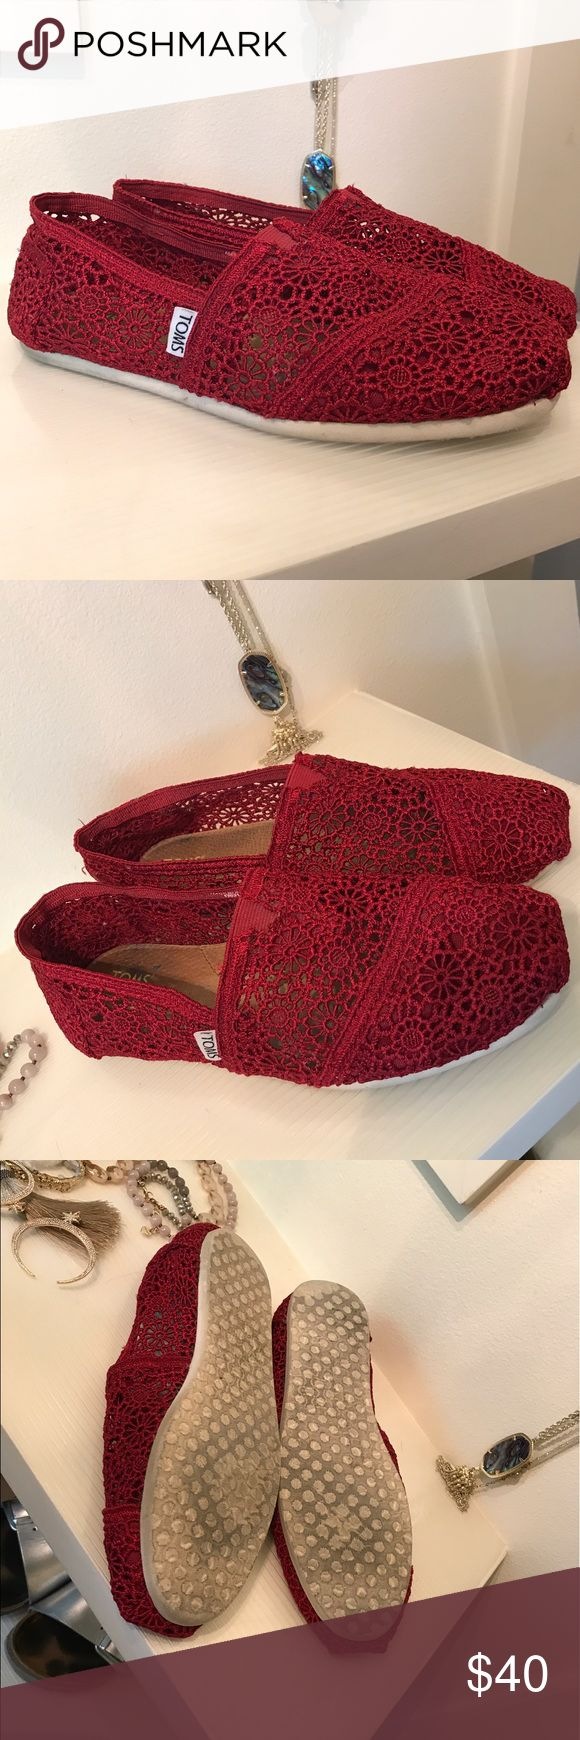 Lightly worn women's red crochet TOMS, size 9. Size 9 women's red crochet classic TOMS. Worn a few times. TOMS Shoes Flats & Loafers